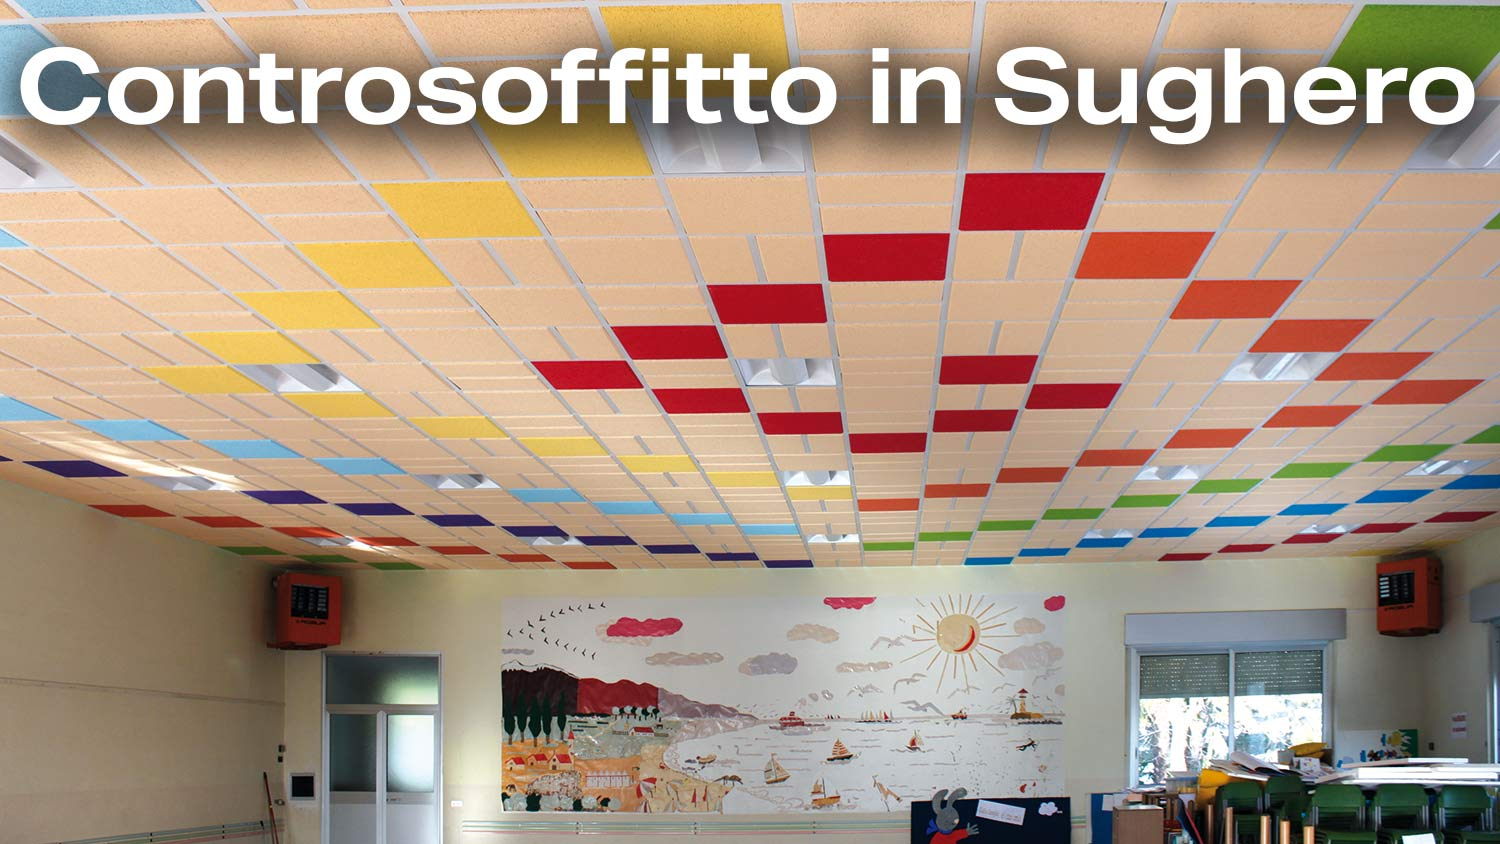 Controsoffitto in Sughero